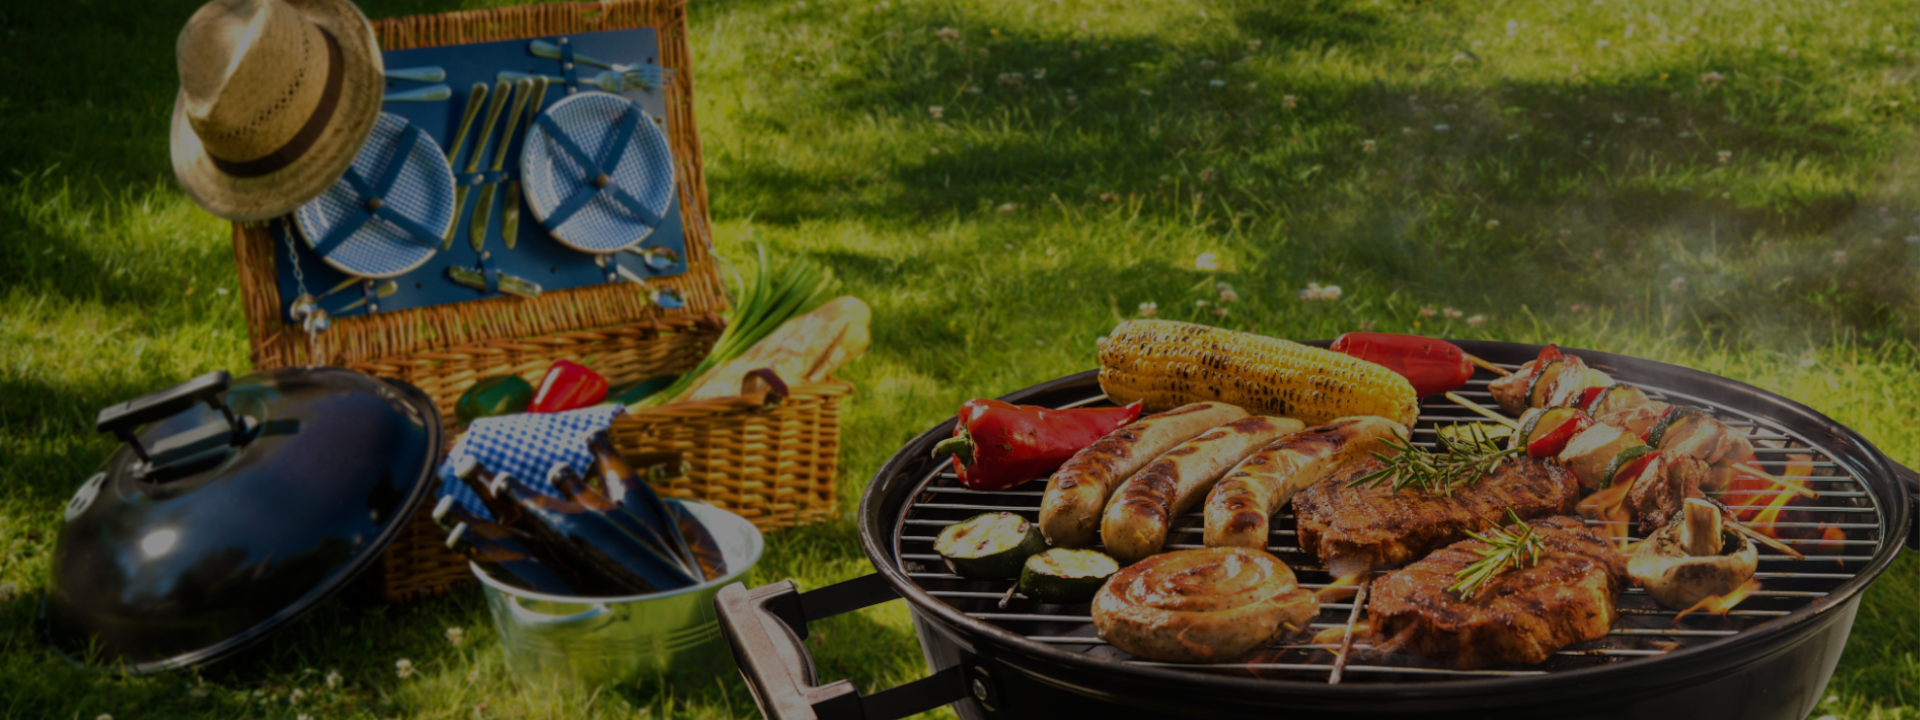 outdoor entertaining with picnic basket and bbq